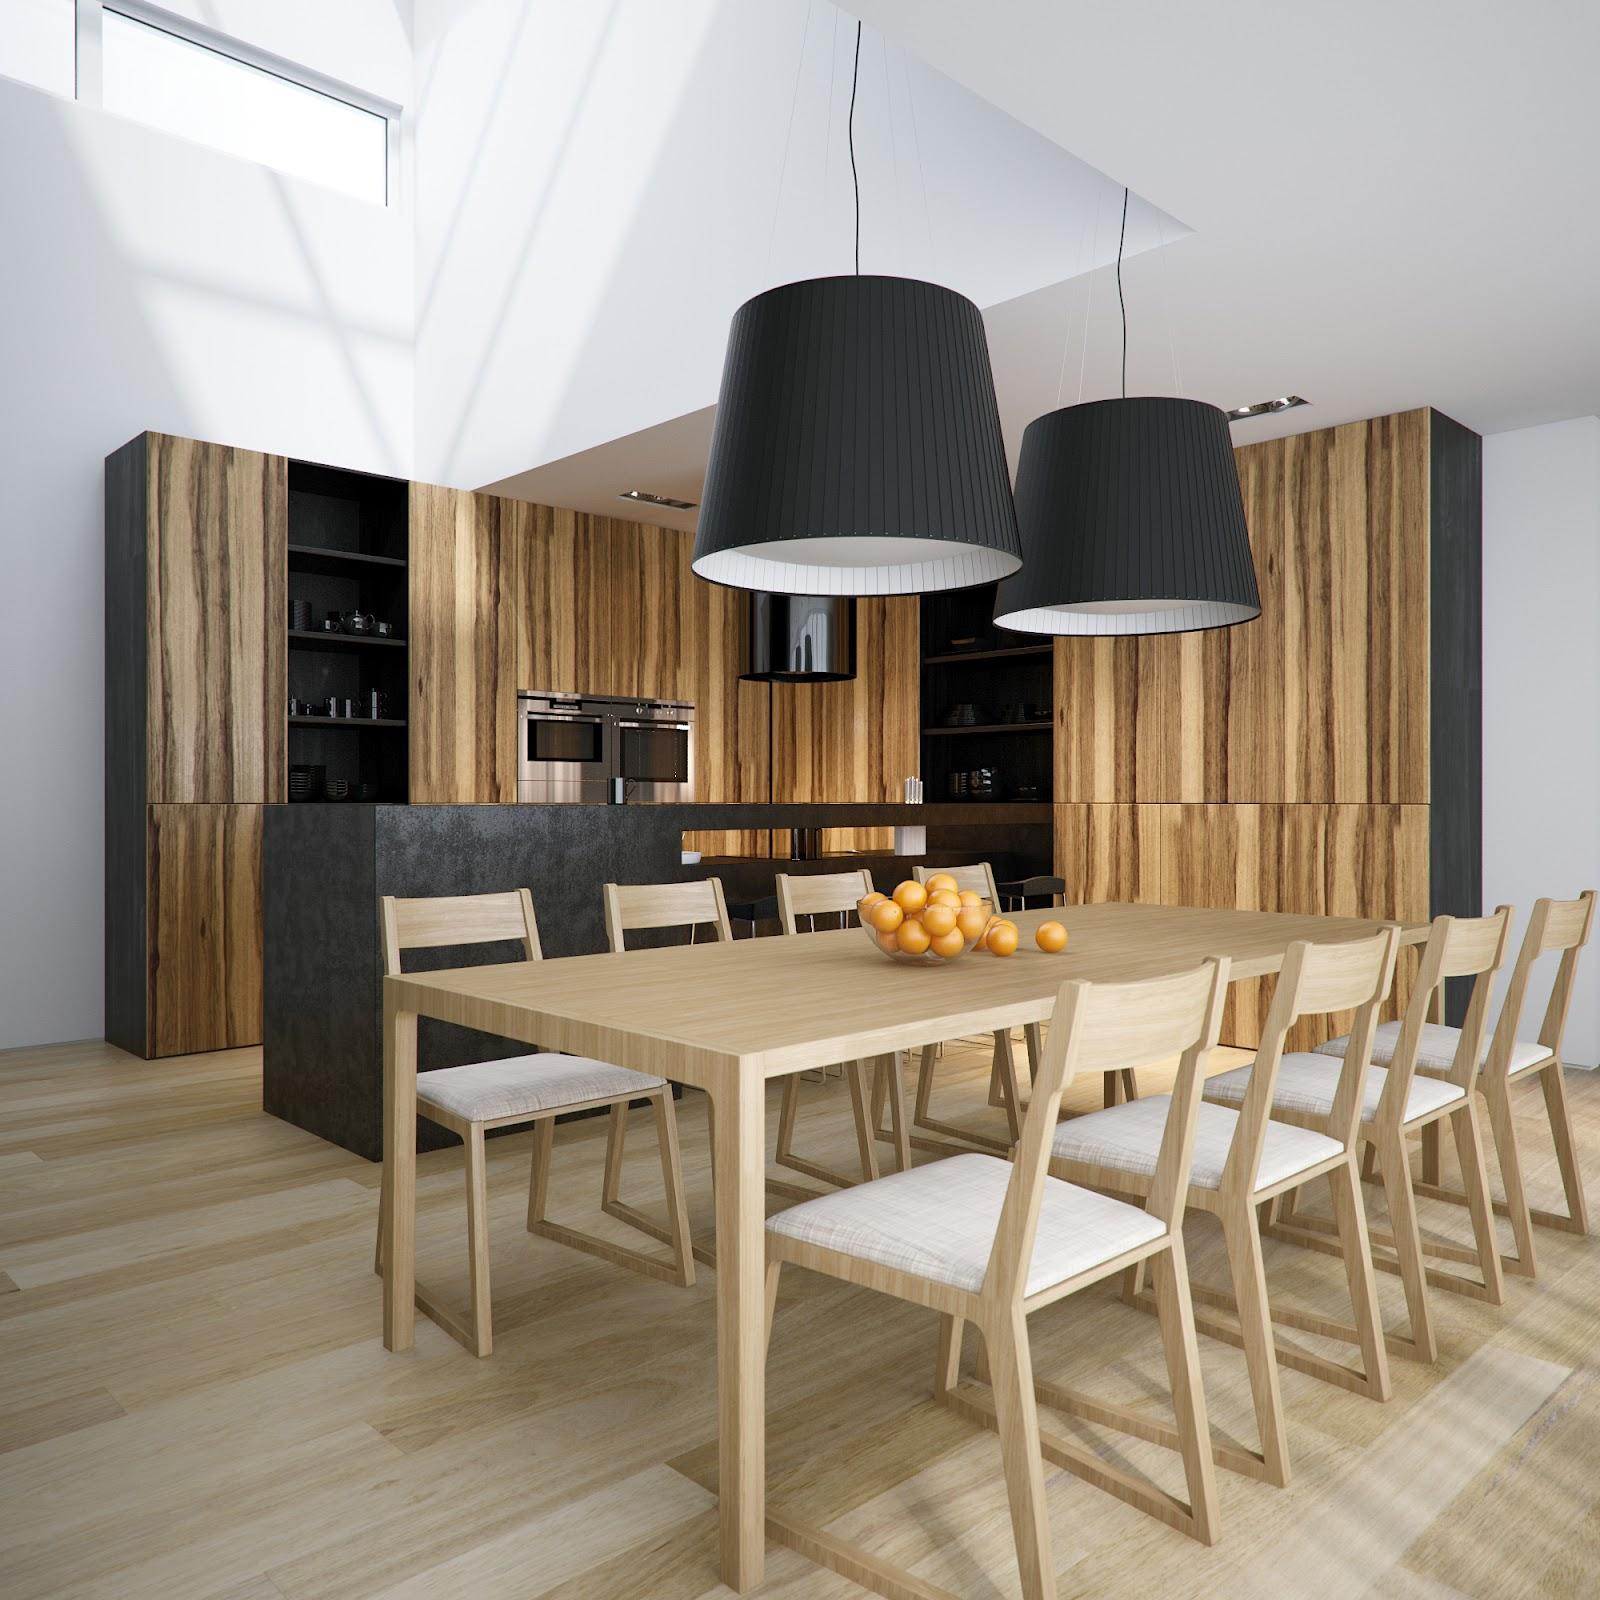 Cuisine Blanc Et Marron: Modern Minimalist Black And White Lofts